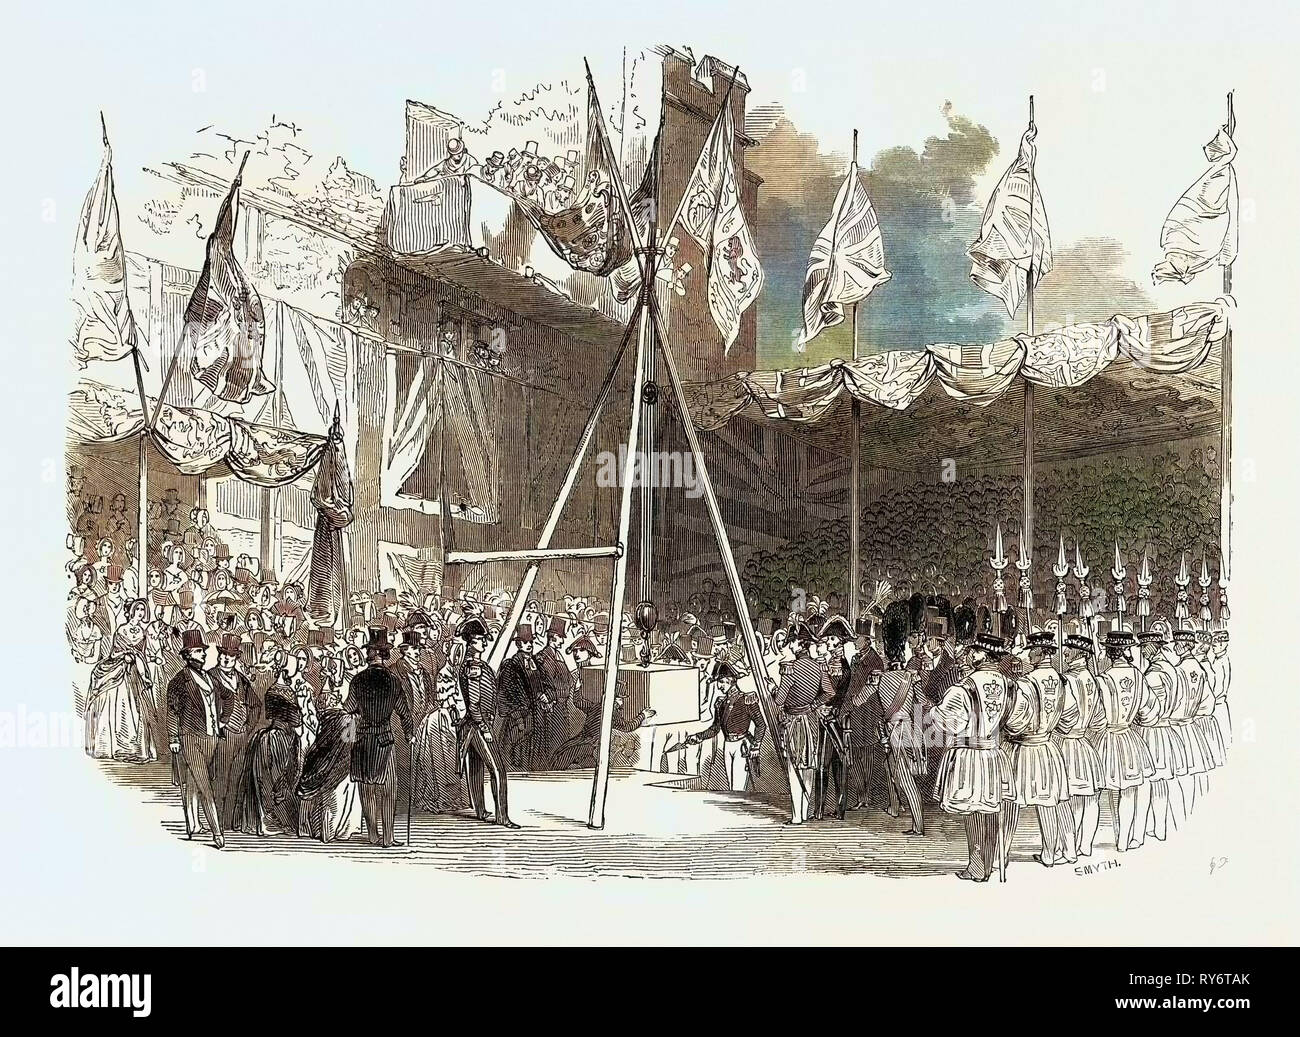 The Duke of Wellington Laying the First Stone of the Waterloo Barracks, at the Tower of London, Great Britain Stock Photo